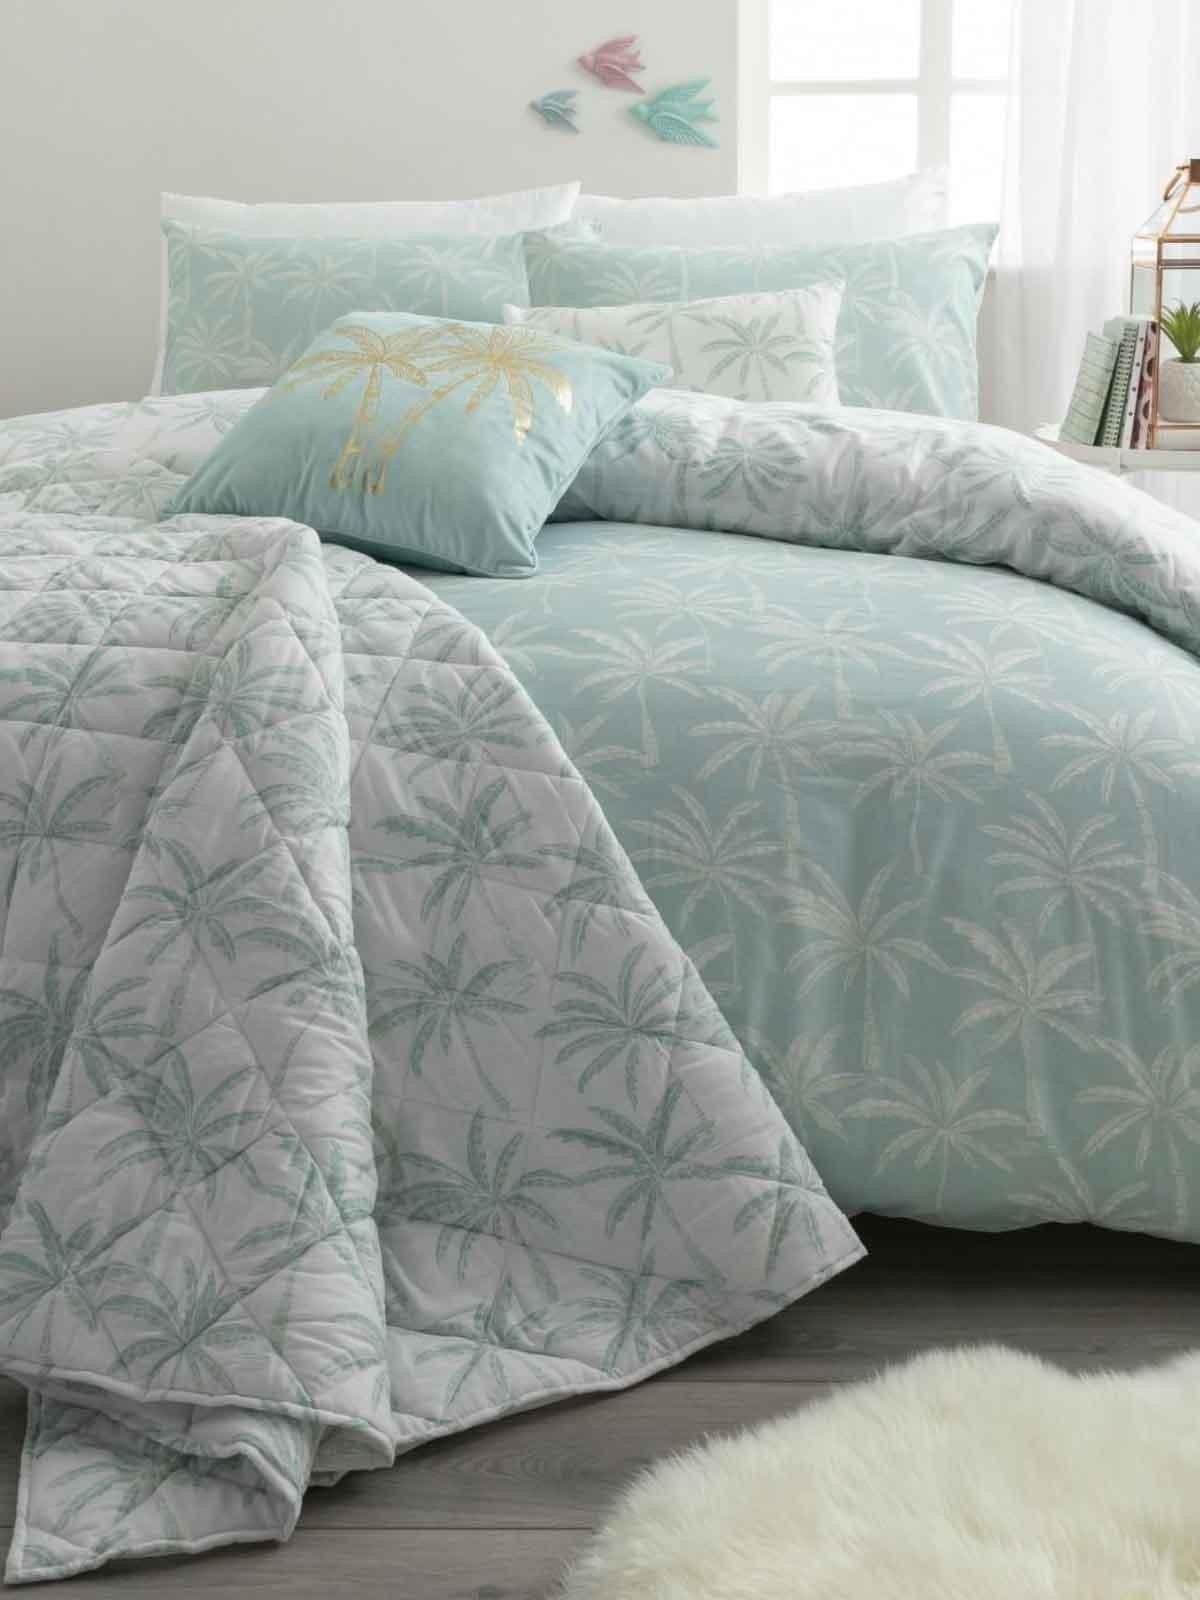 Tropical Palm Bedding Collection Aqua Ponden Home